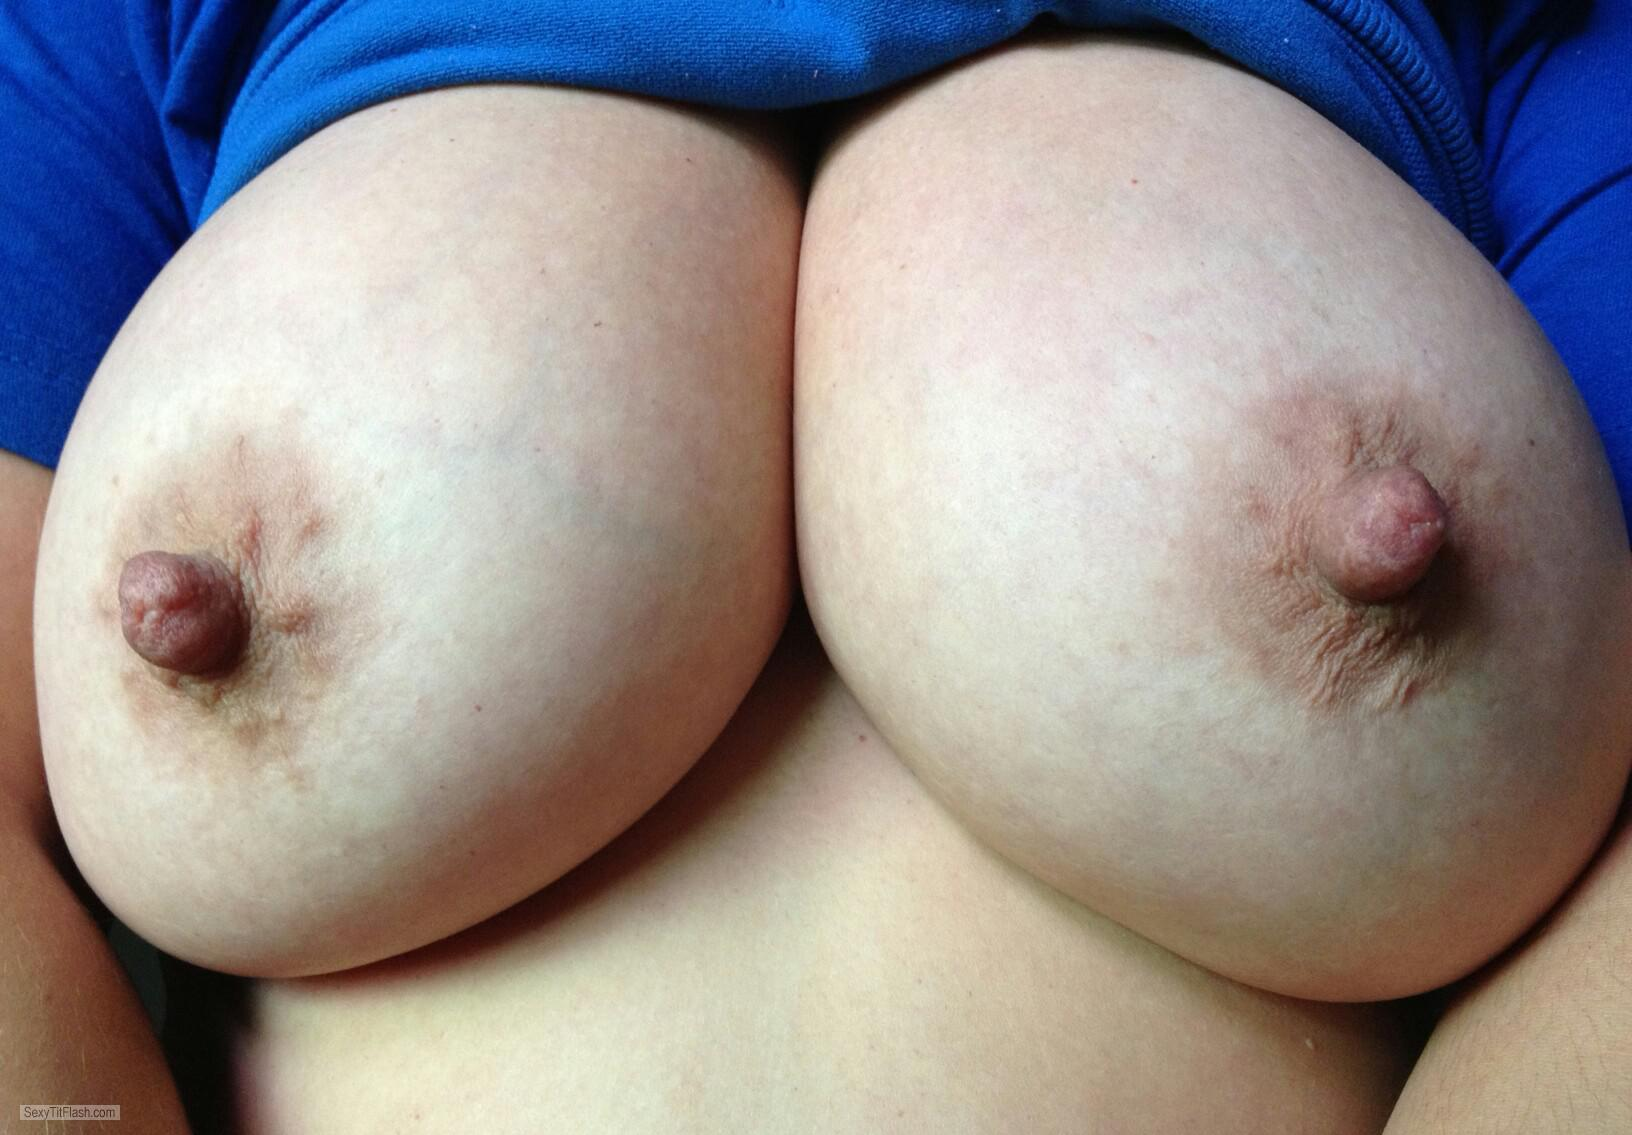 Big Tits Of My Wife Playtime